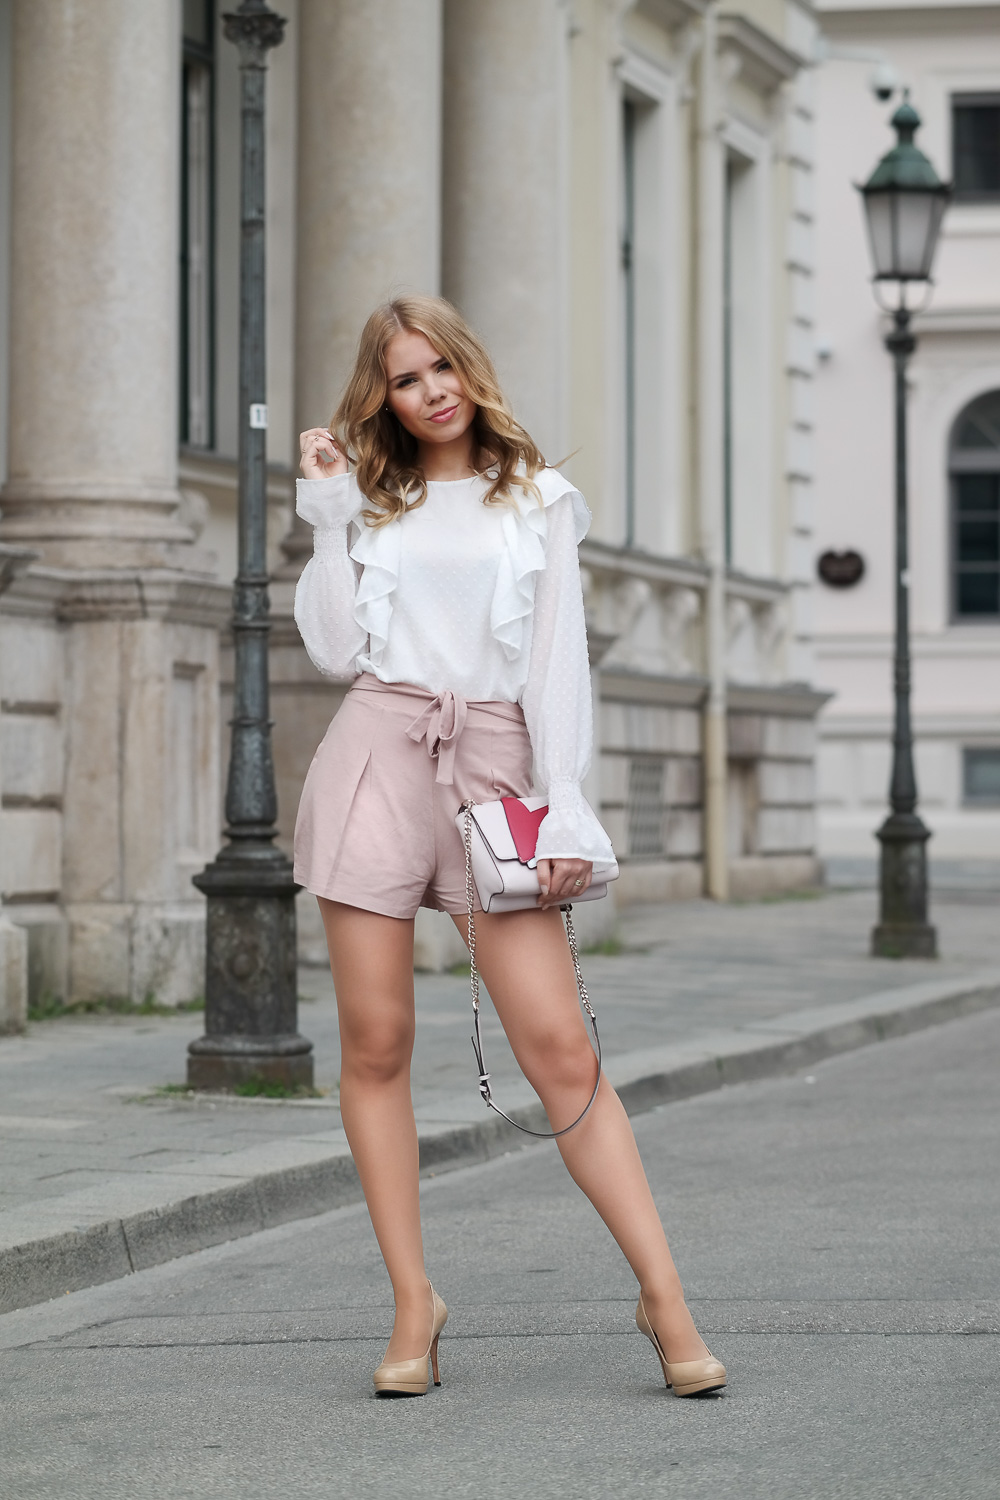 Sommer Outfit-Bluse-Shorts-hohe Schuhe-kleine Guess Tasche